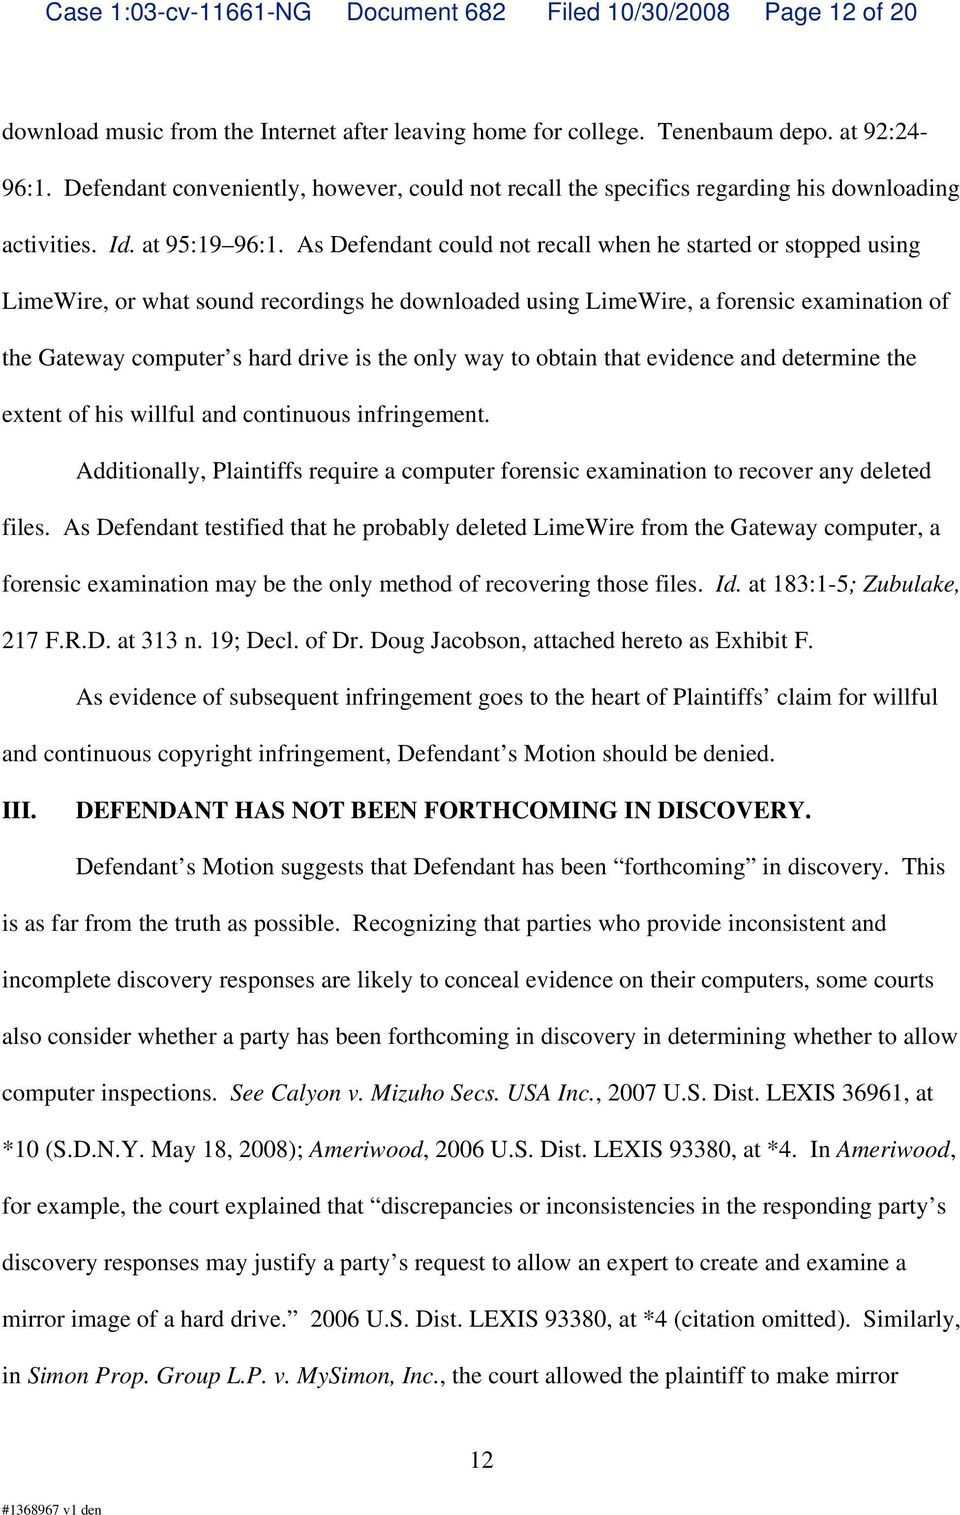 As Defendant could not recall when he started or stopped using LimeWire, or what sound recordings he downloaded using LimeWire, a forensic examination of the Gateway computer s hard drive is the only